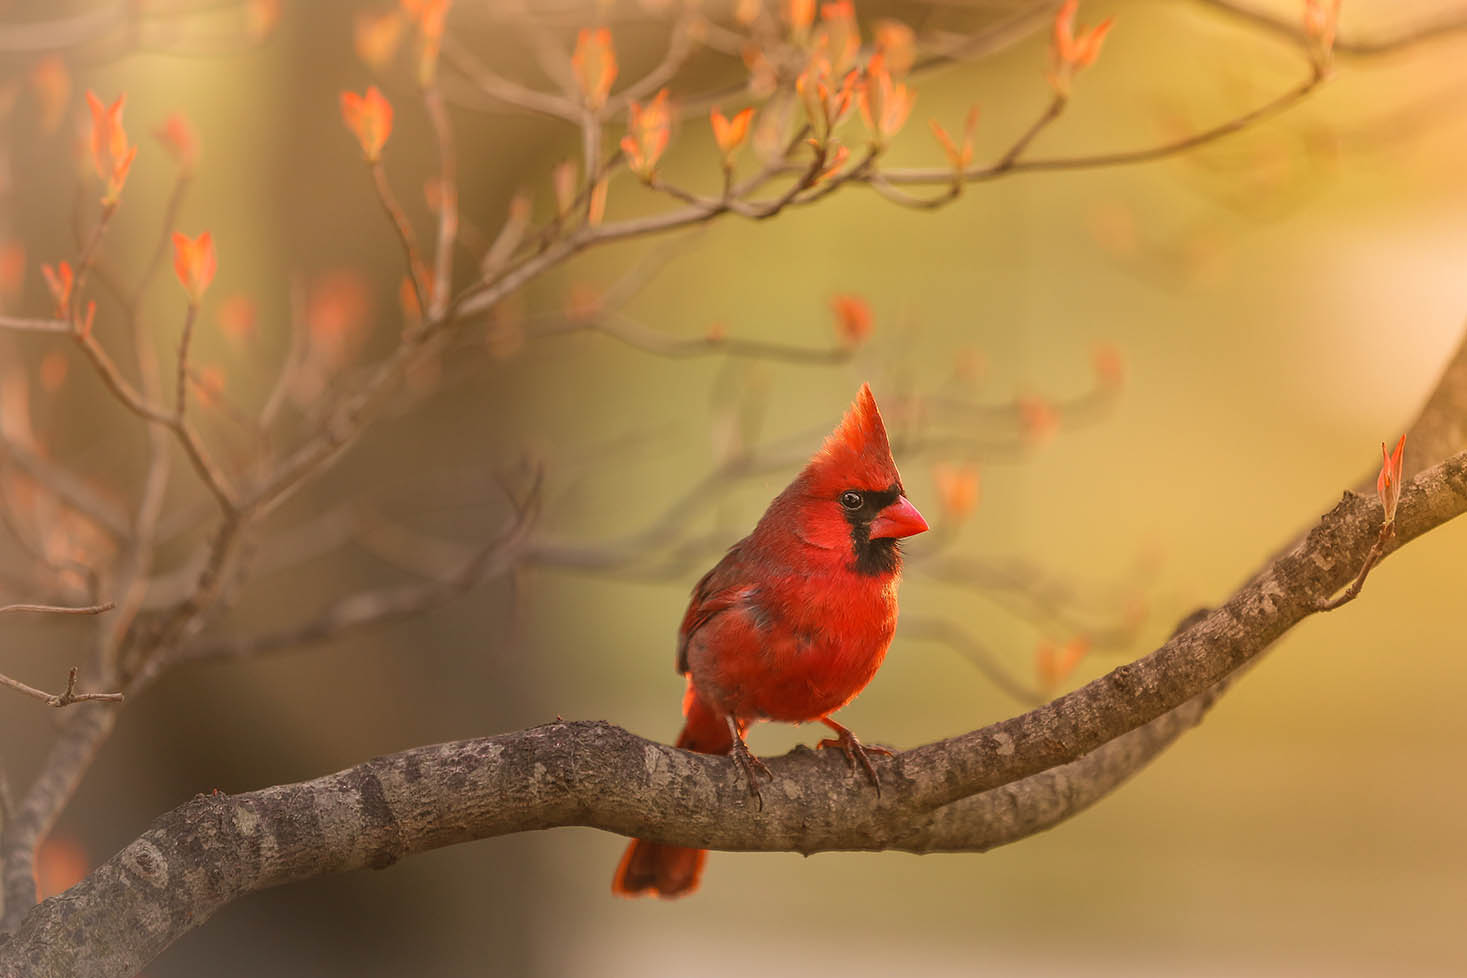 A cardinal sitting on a branch with orange leaves